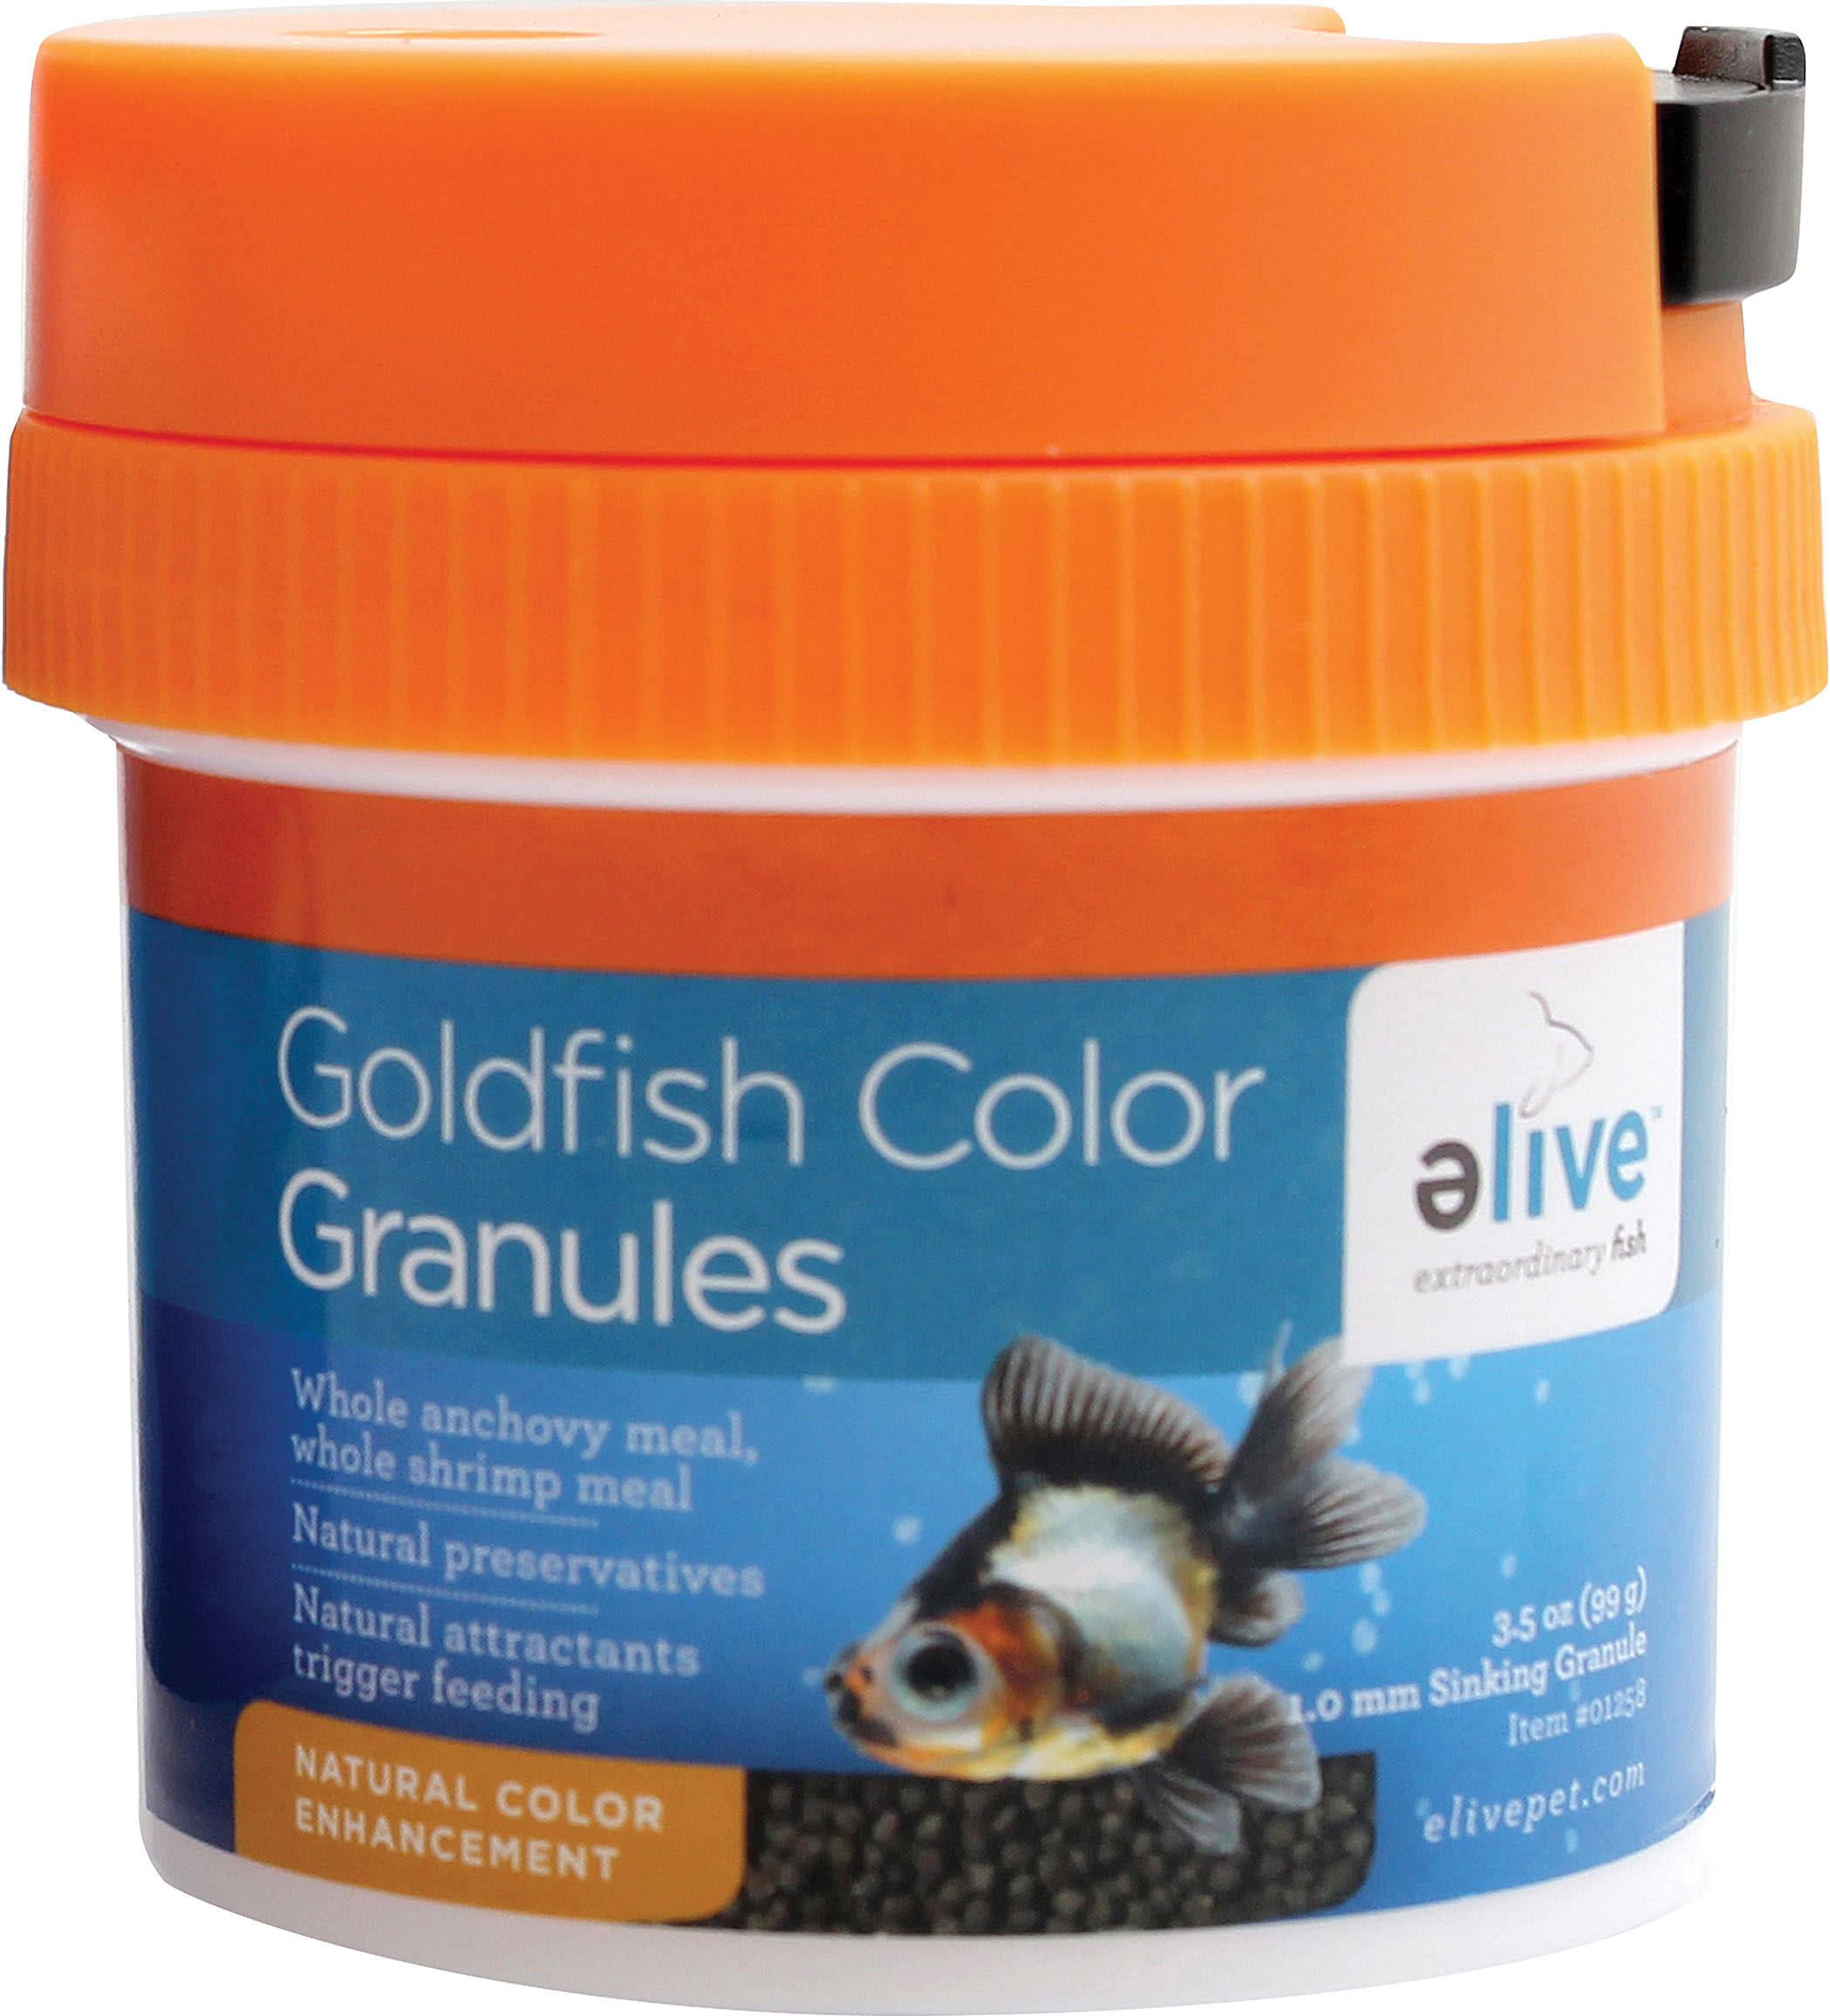 Elive Granules Fish Food - Goldfish Color, 3.5oz